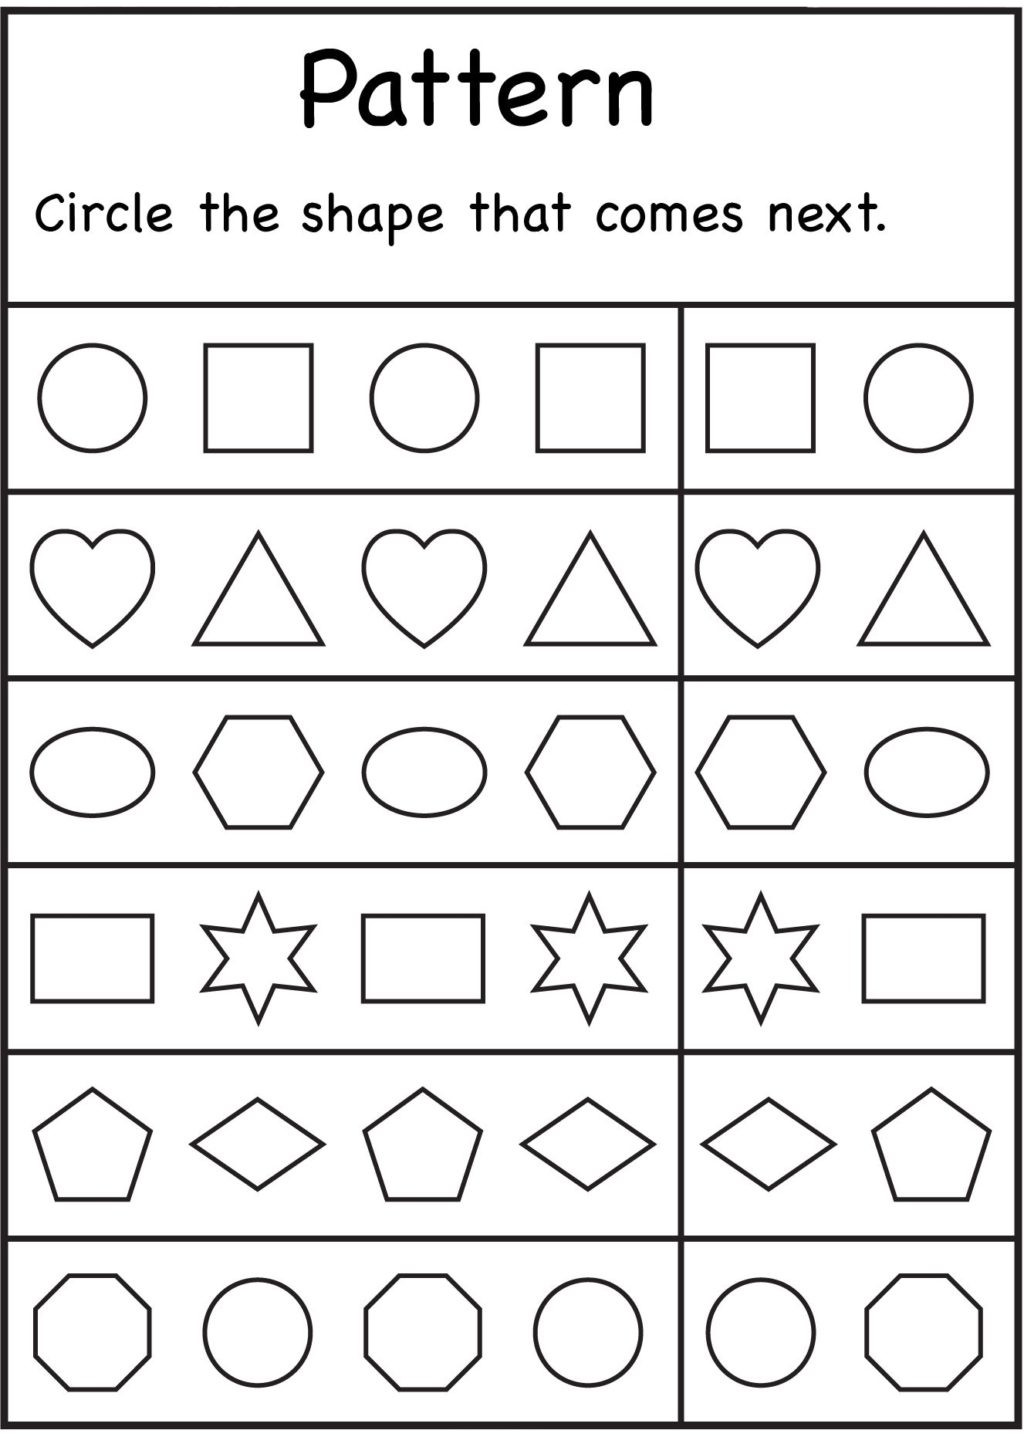 Common Core Kindergarten Math Worksheets Worksheet Worksheet Money Activities forten Pinterest Free